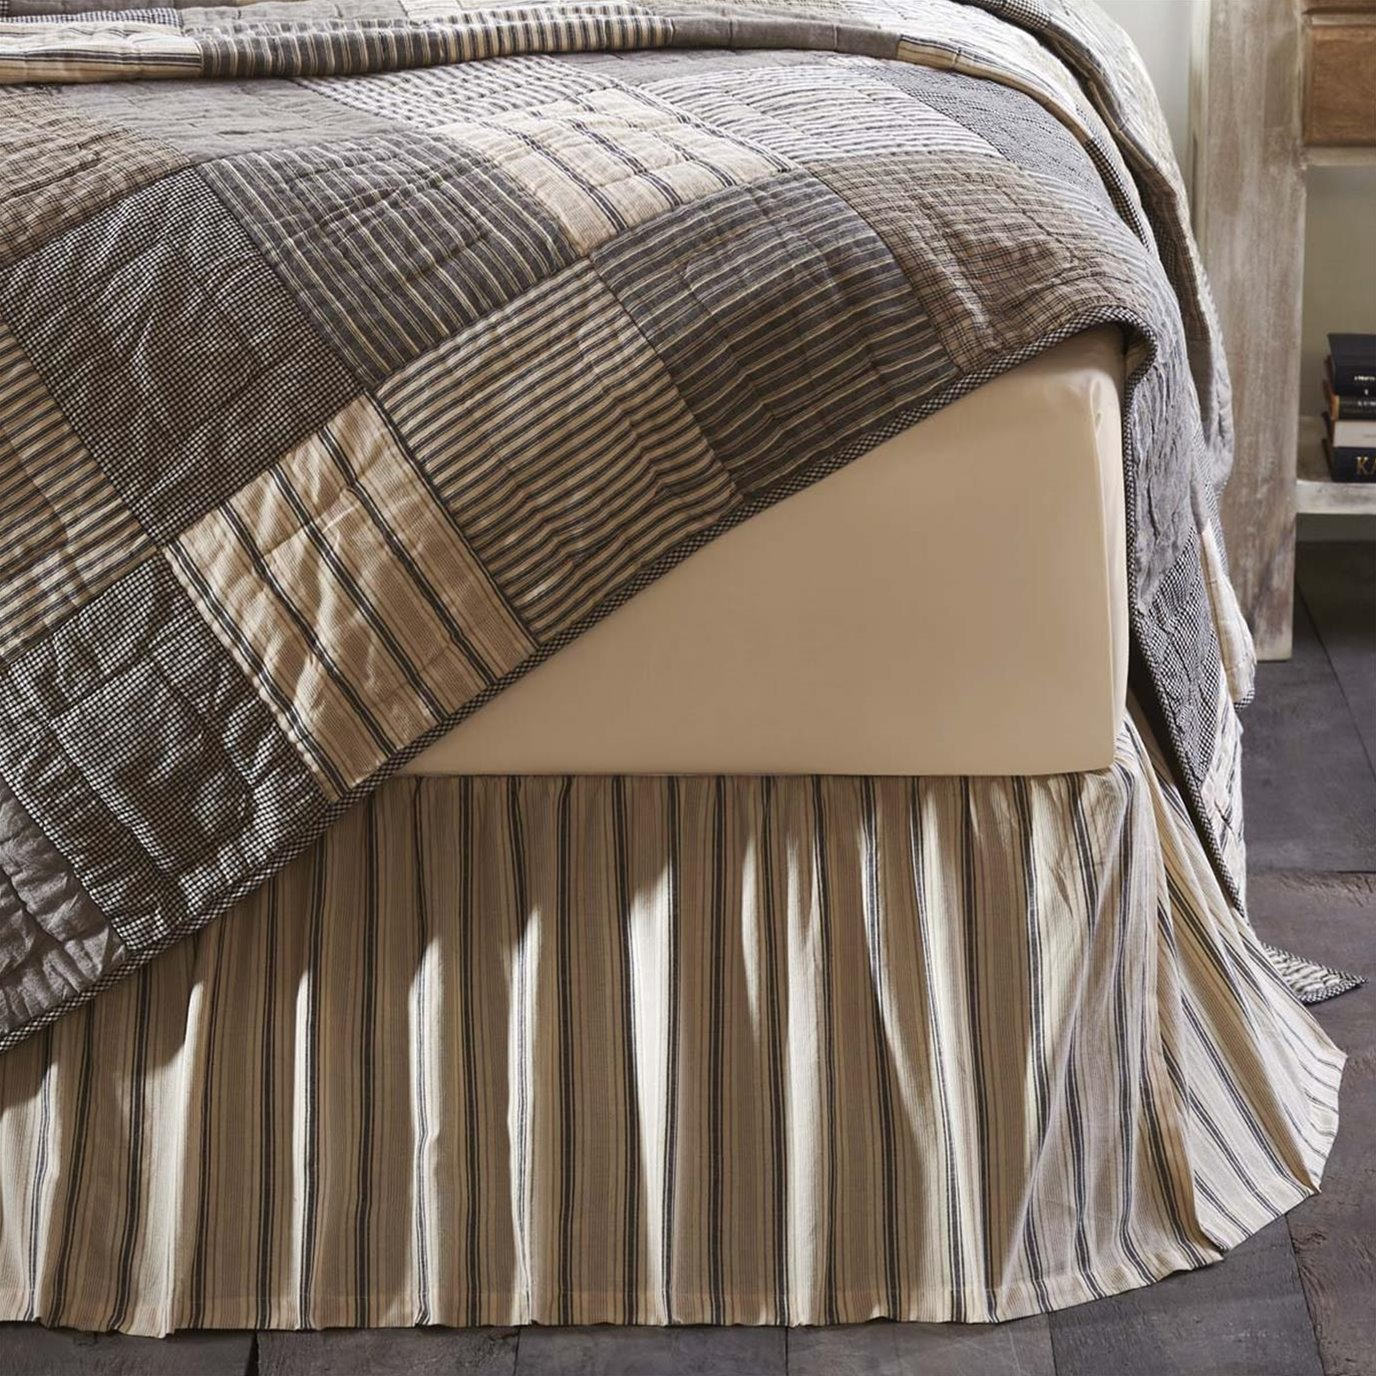 Sawyer Mill Charcoal King Bed Skirt 78x80x16